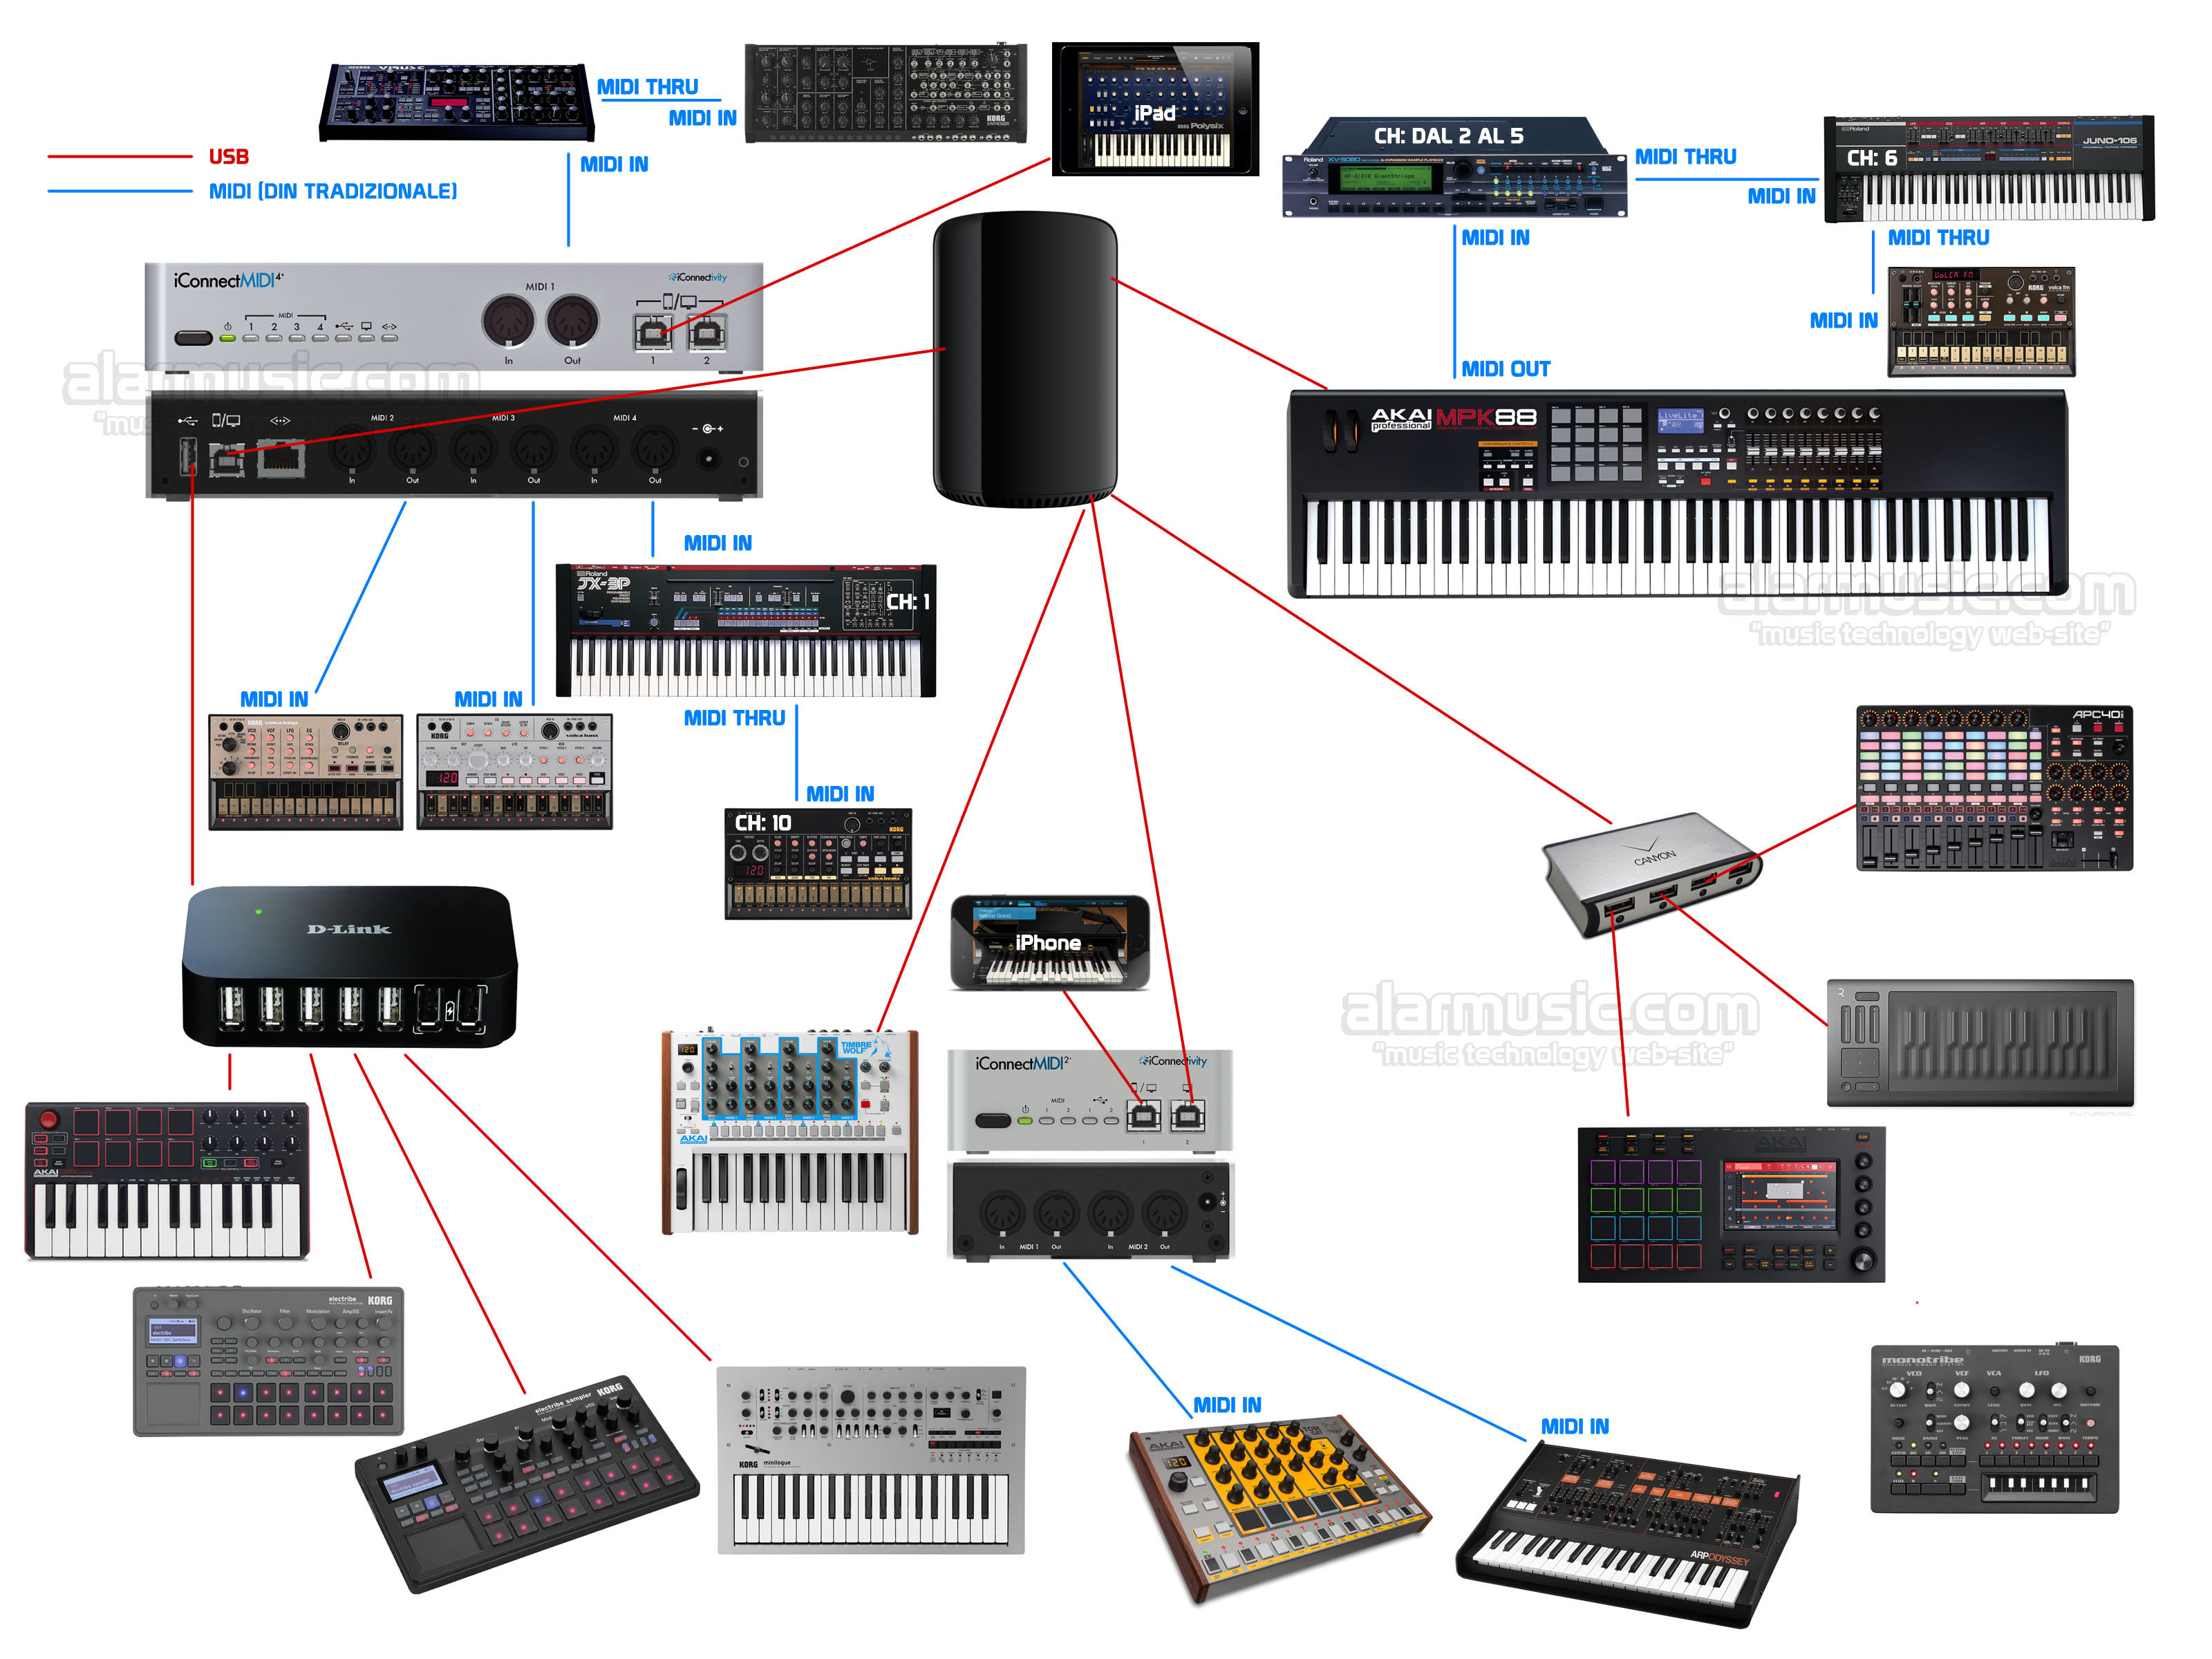 Click to enlarge image aa-diagramma-midi-2016-alar-recording-studio.jpg